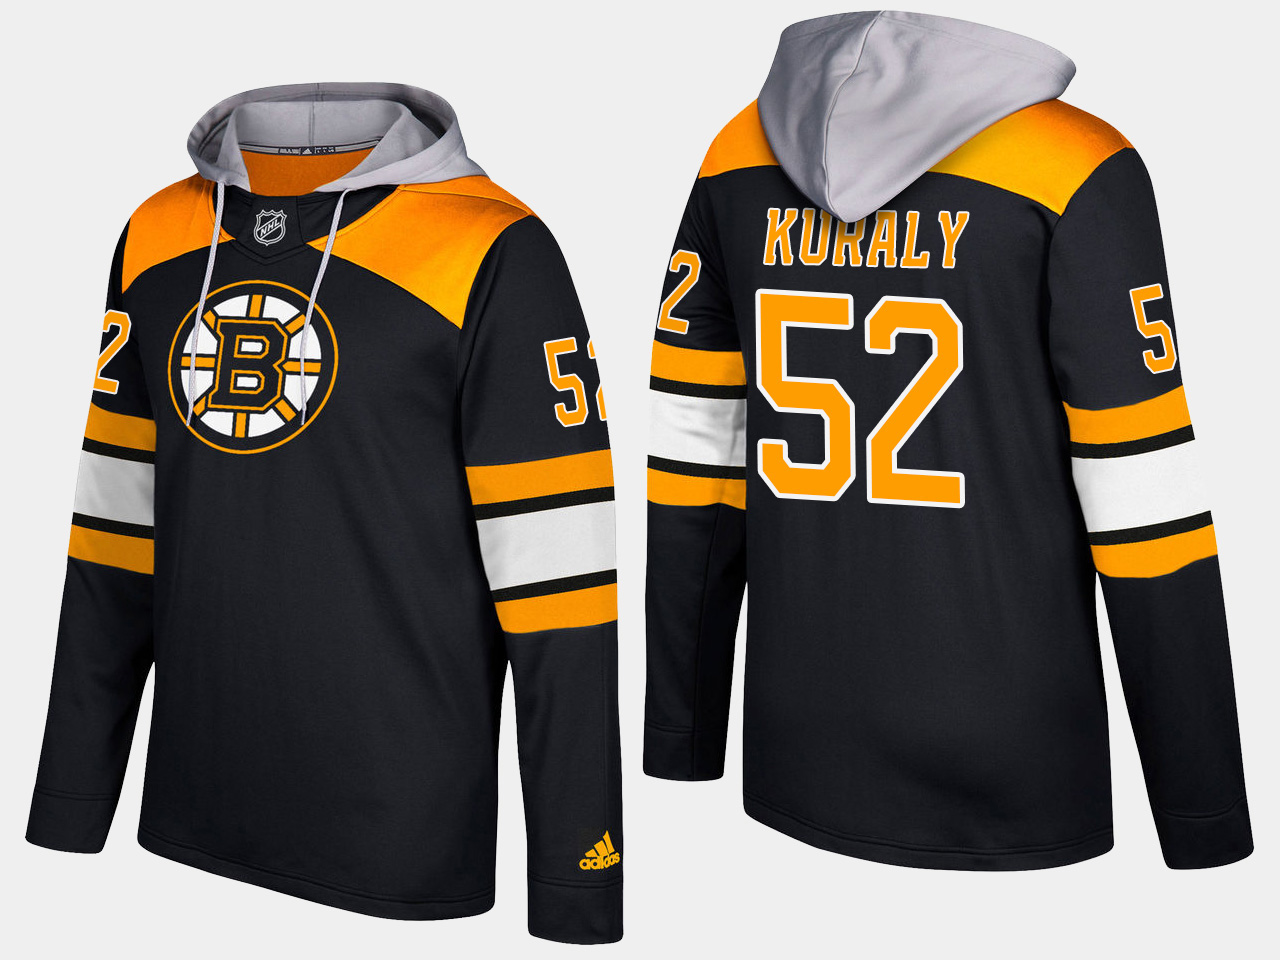 Men NHL Boston bruins 52 sean kuraly black hoodie